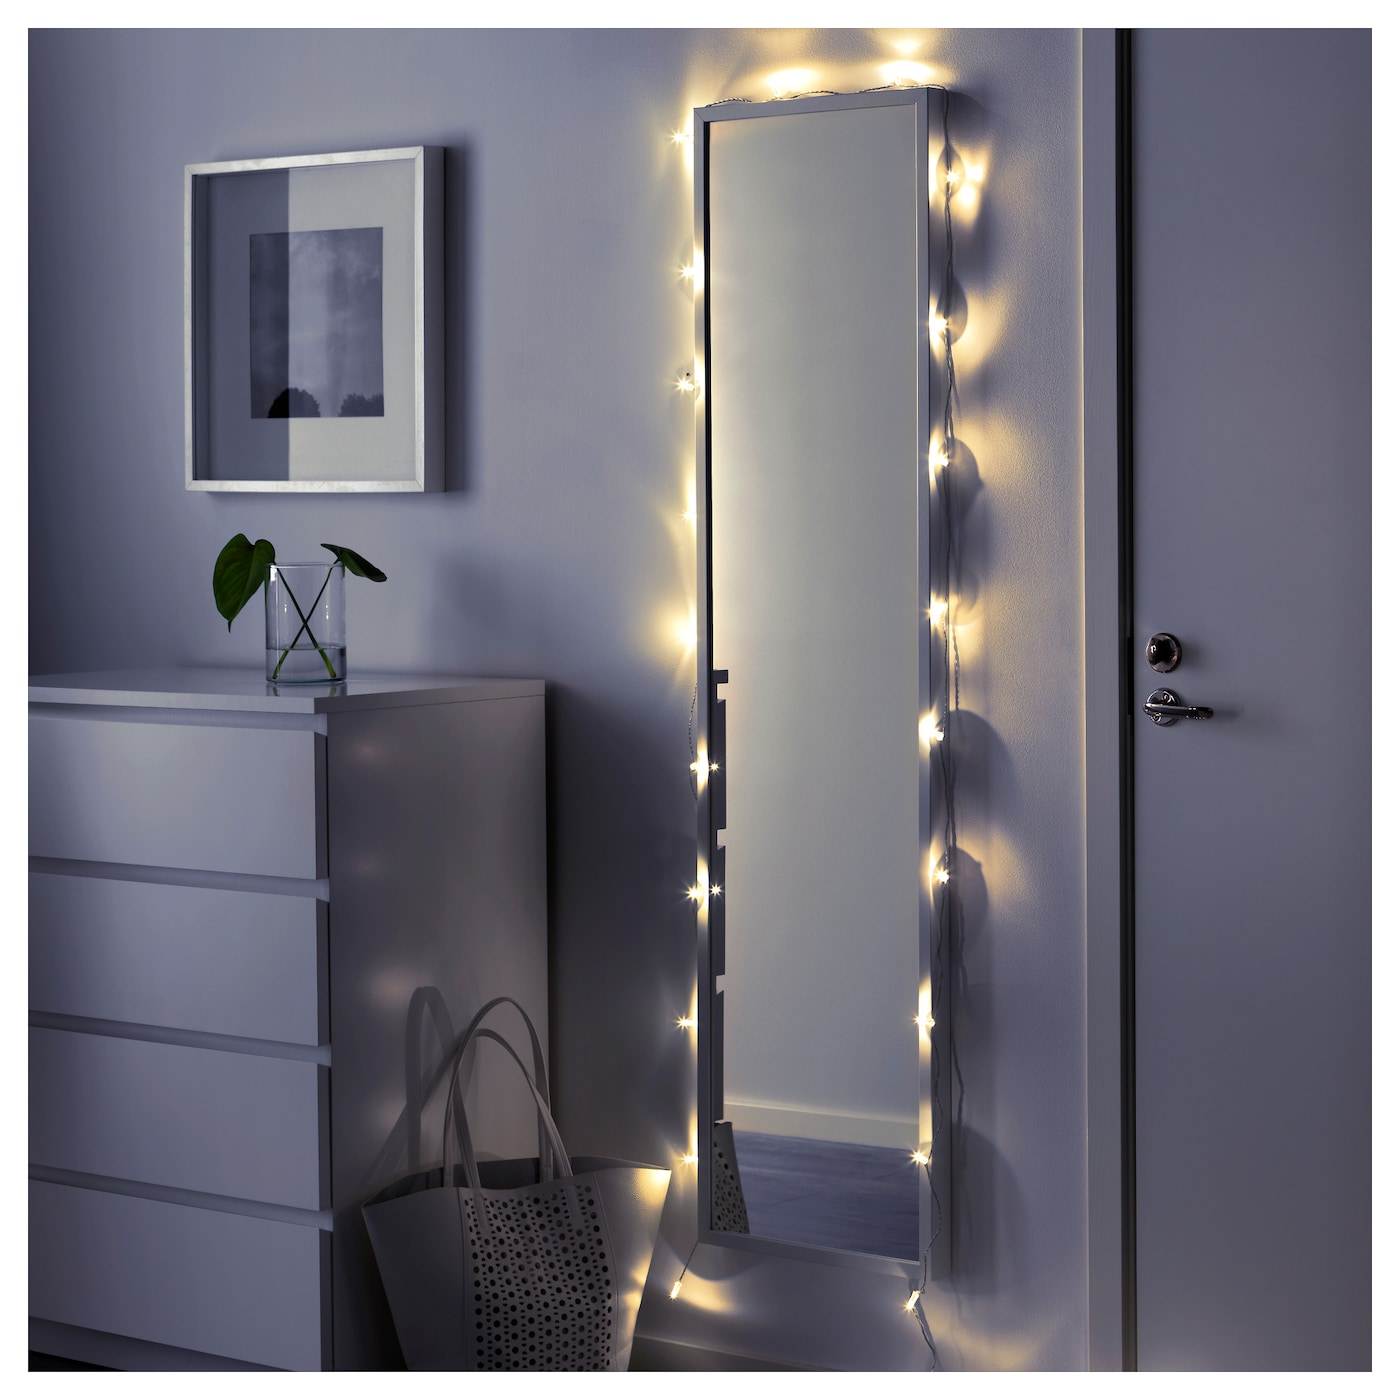 IKEA SÄRDAL LED lighting chain with 24 lights